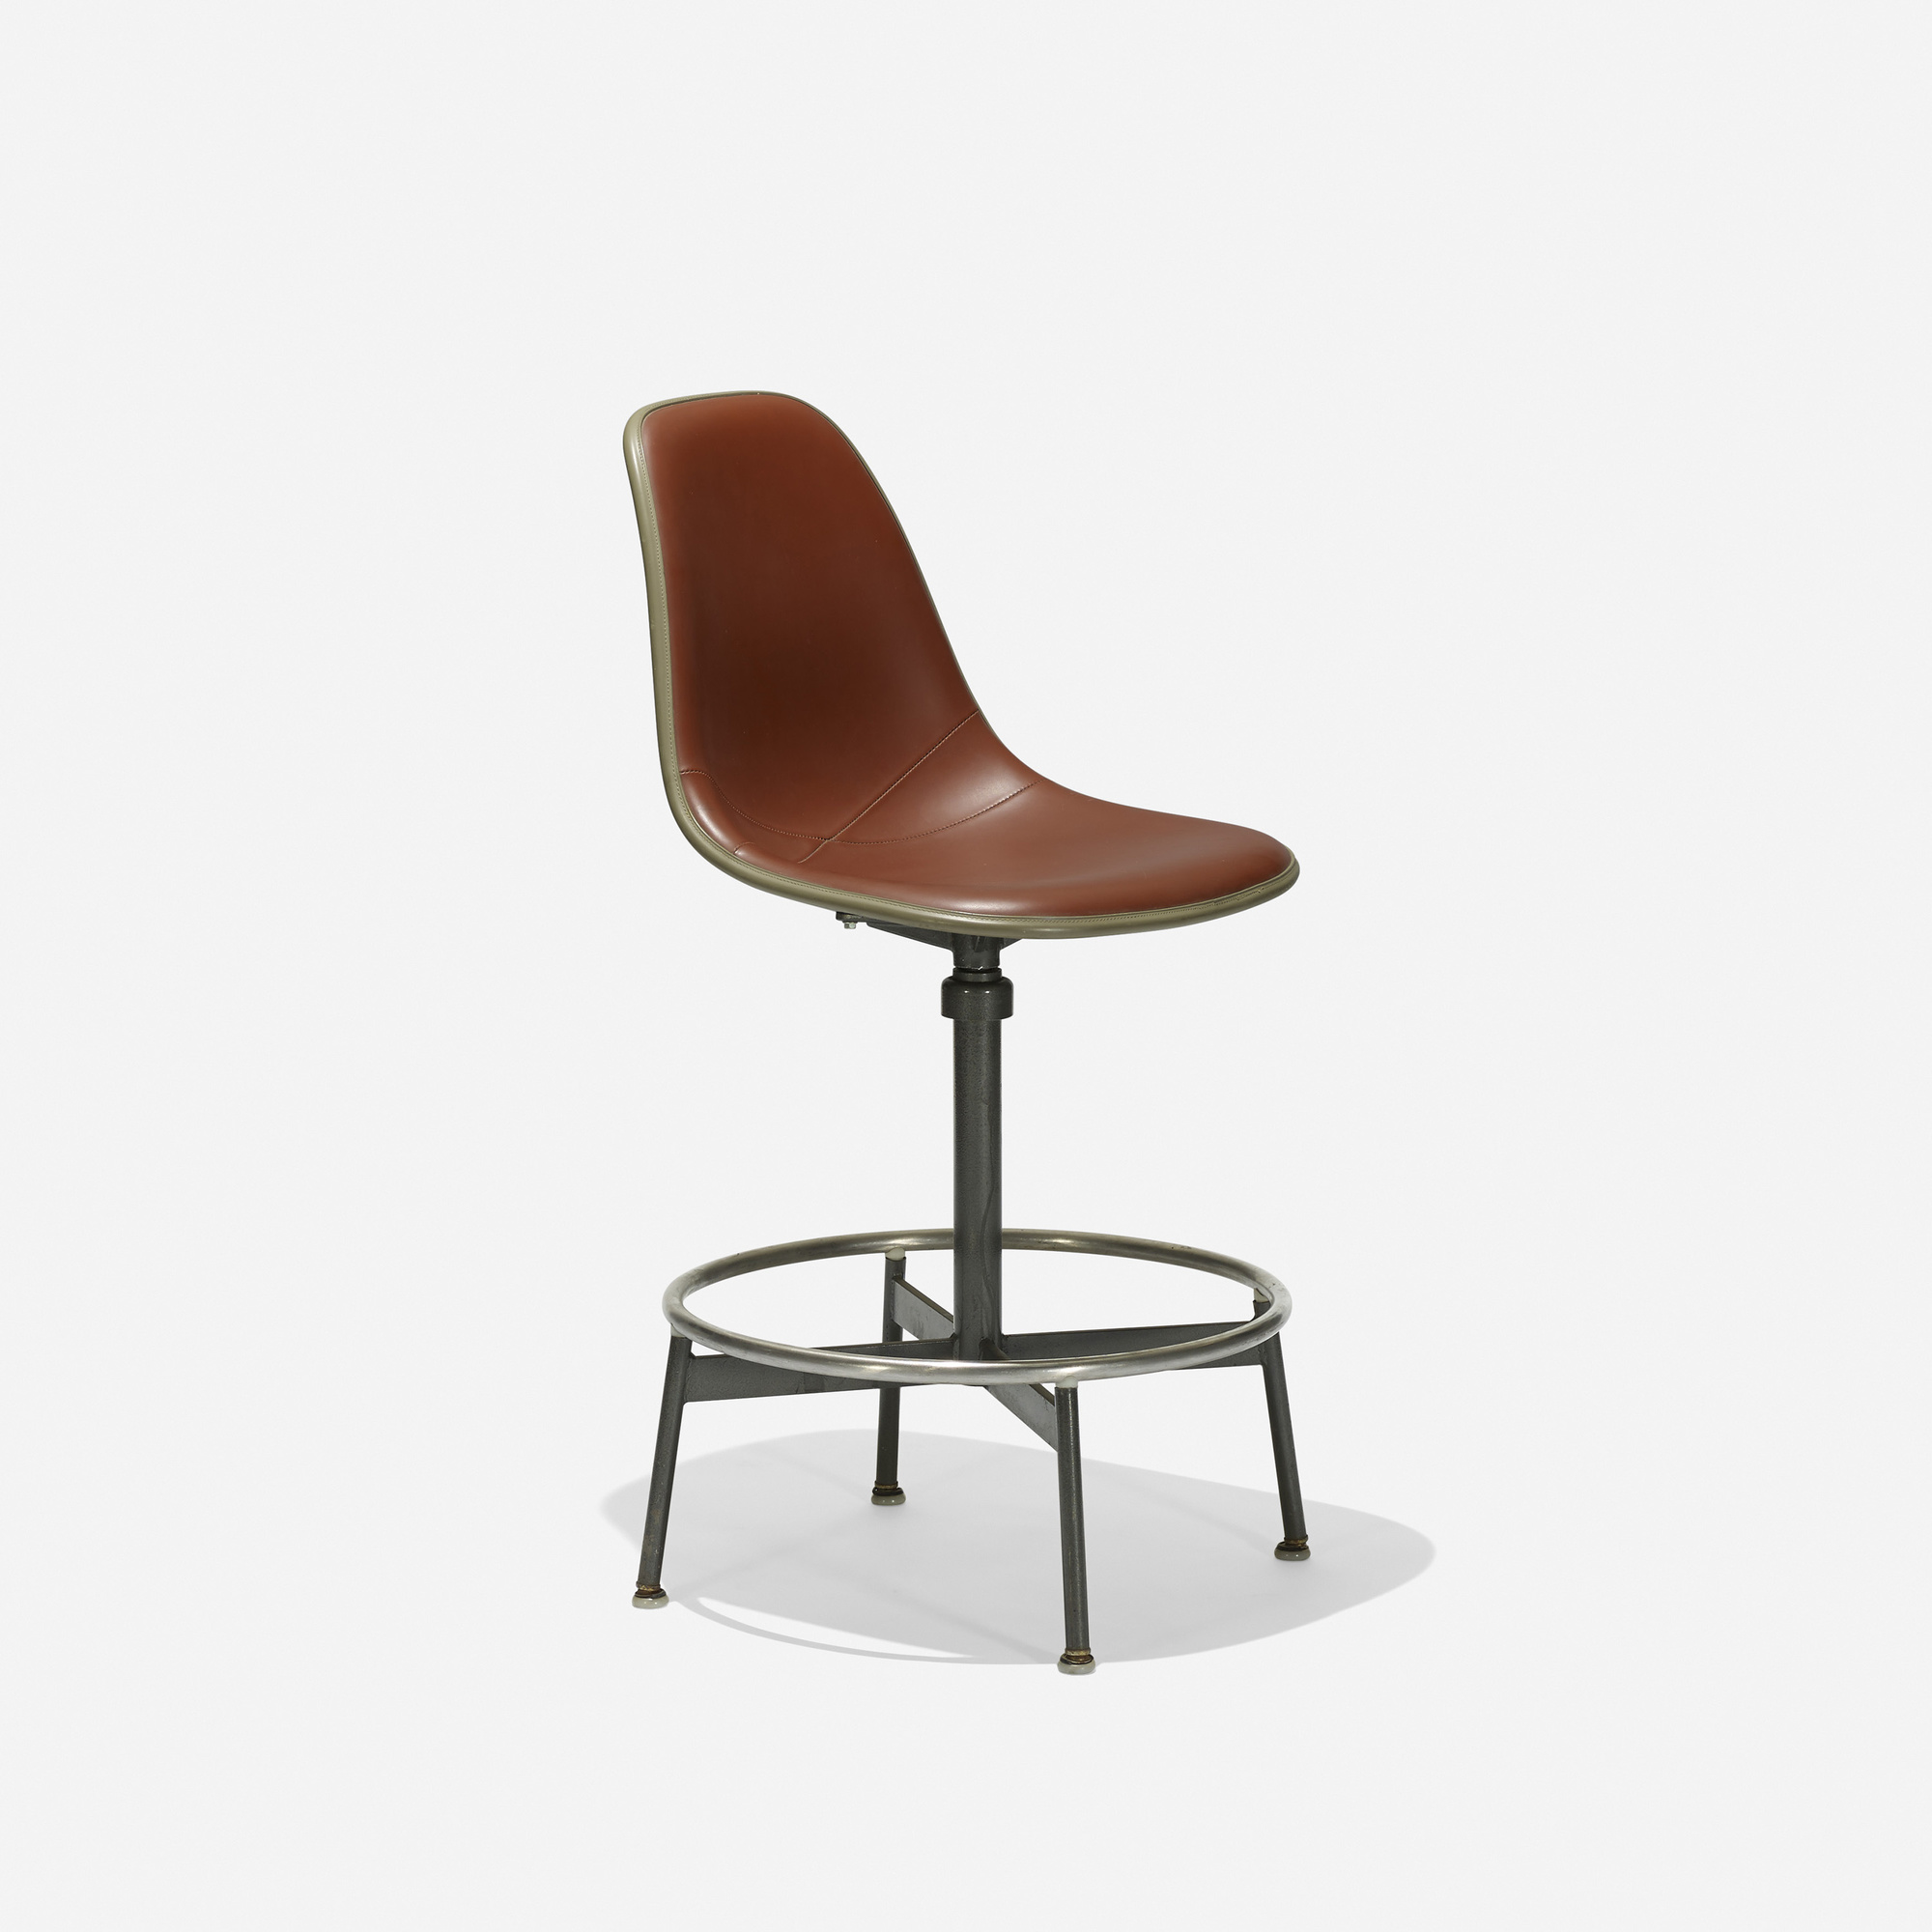 255 Charles and Ray Eames / Drafting chair model 622TS-1 (1 & 255: CHARLES AND RAY EAMES Drafting chair model 622TS-1 u003c Eames ...